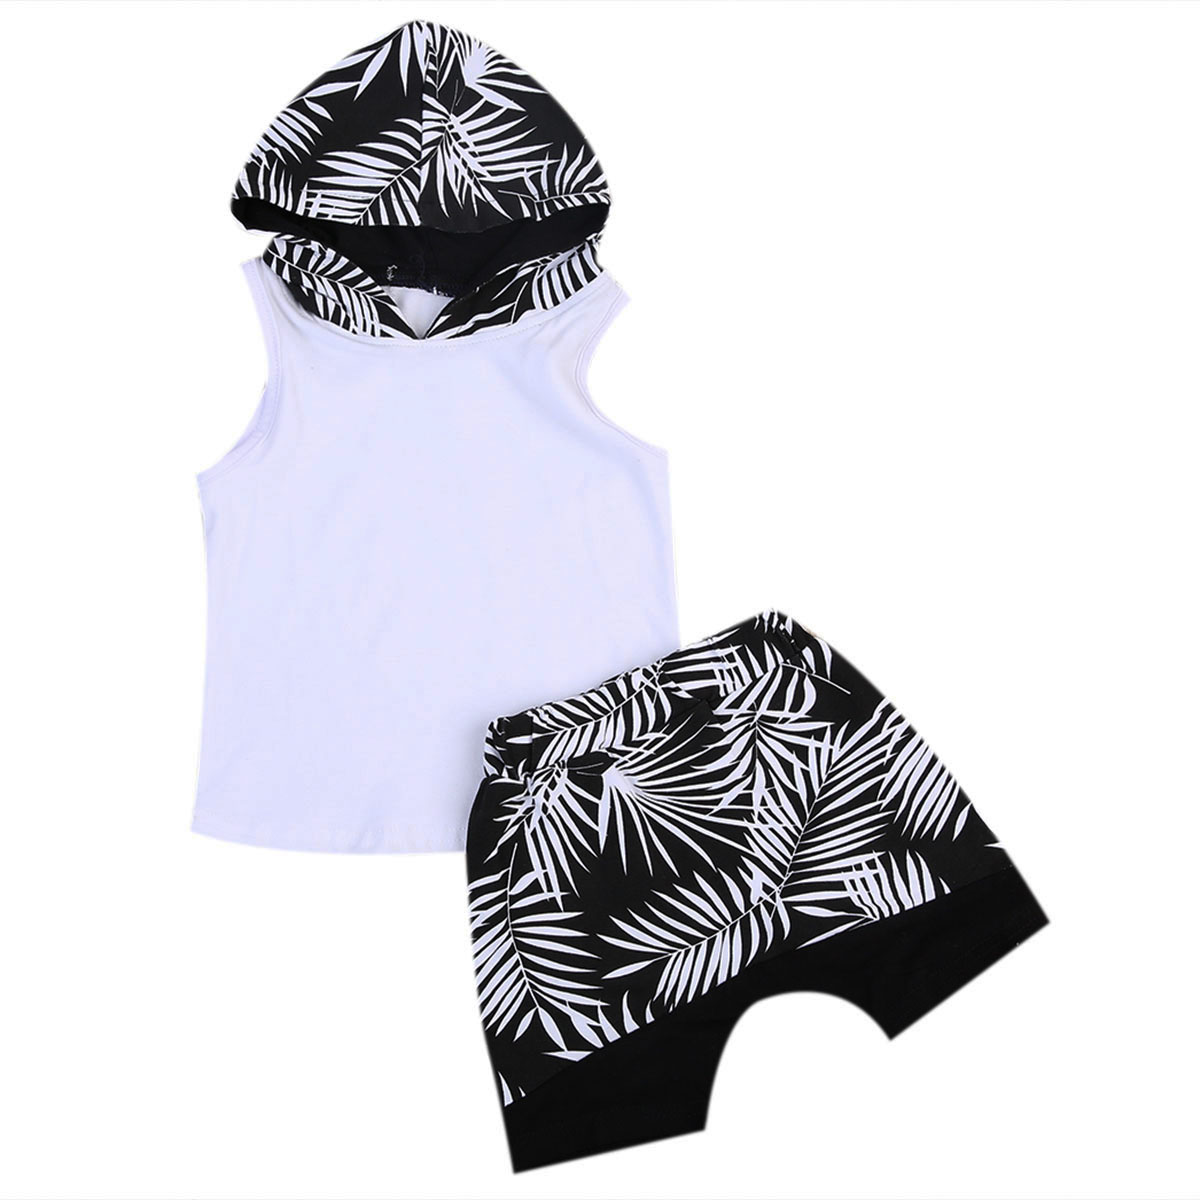 2017 Summer Children Boy Clothes Set Sleeveless Hooded Vest T-shirt Tops+Shorts Hot Pant 2PCS Toddler Kids Clothing flower sleeveless vest t shirt tops vest shorts pants outfit girl clothes set 2pcs baby children girls kids clothing bow knot